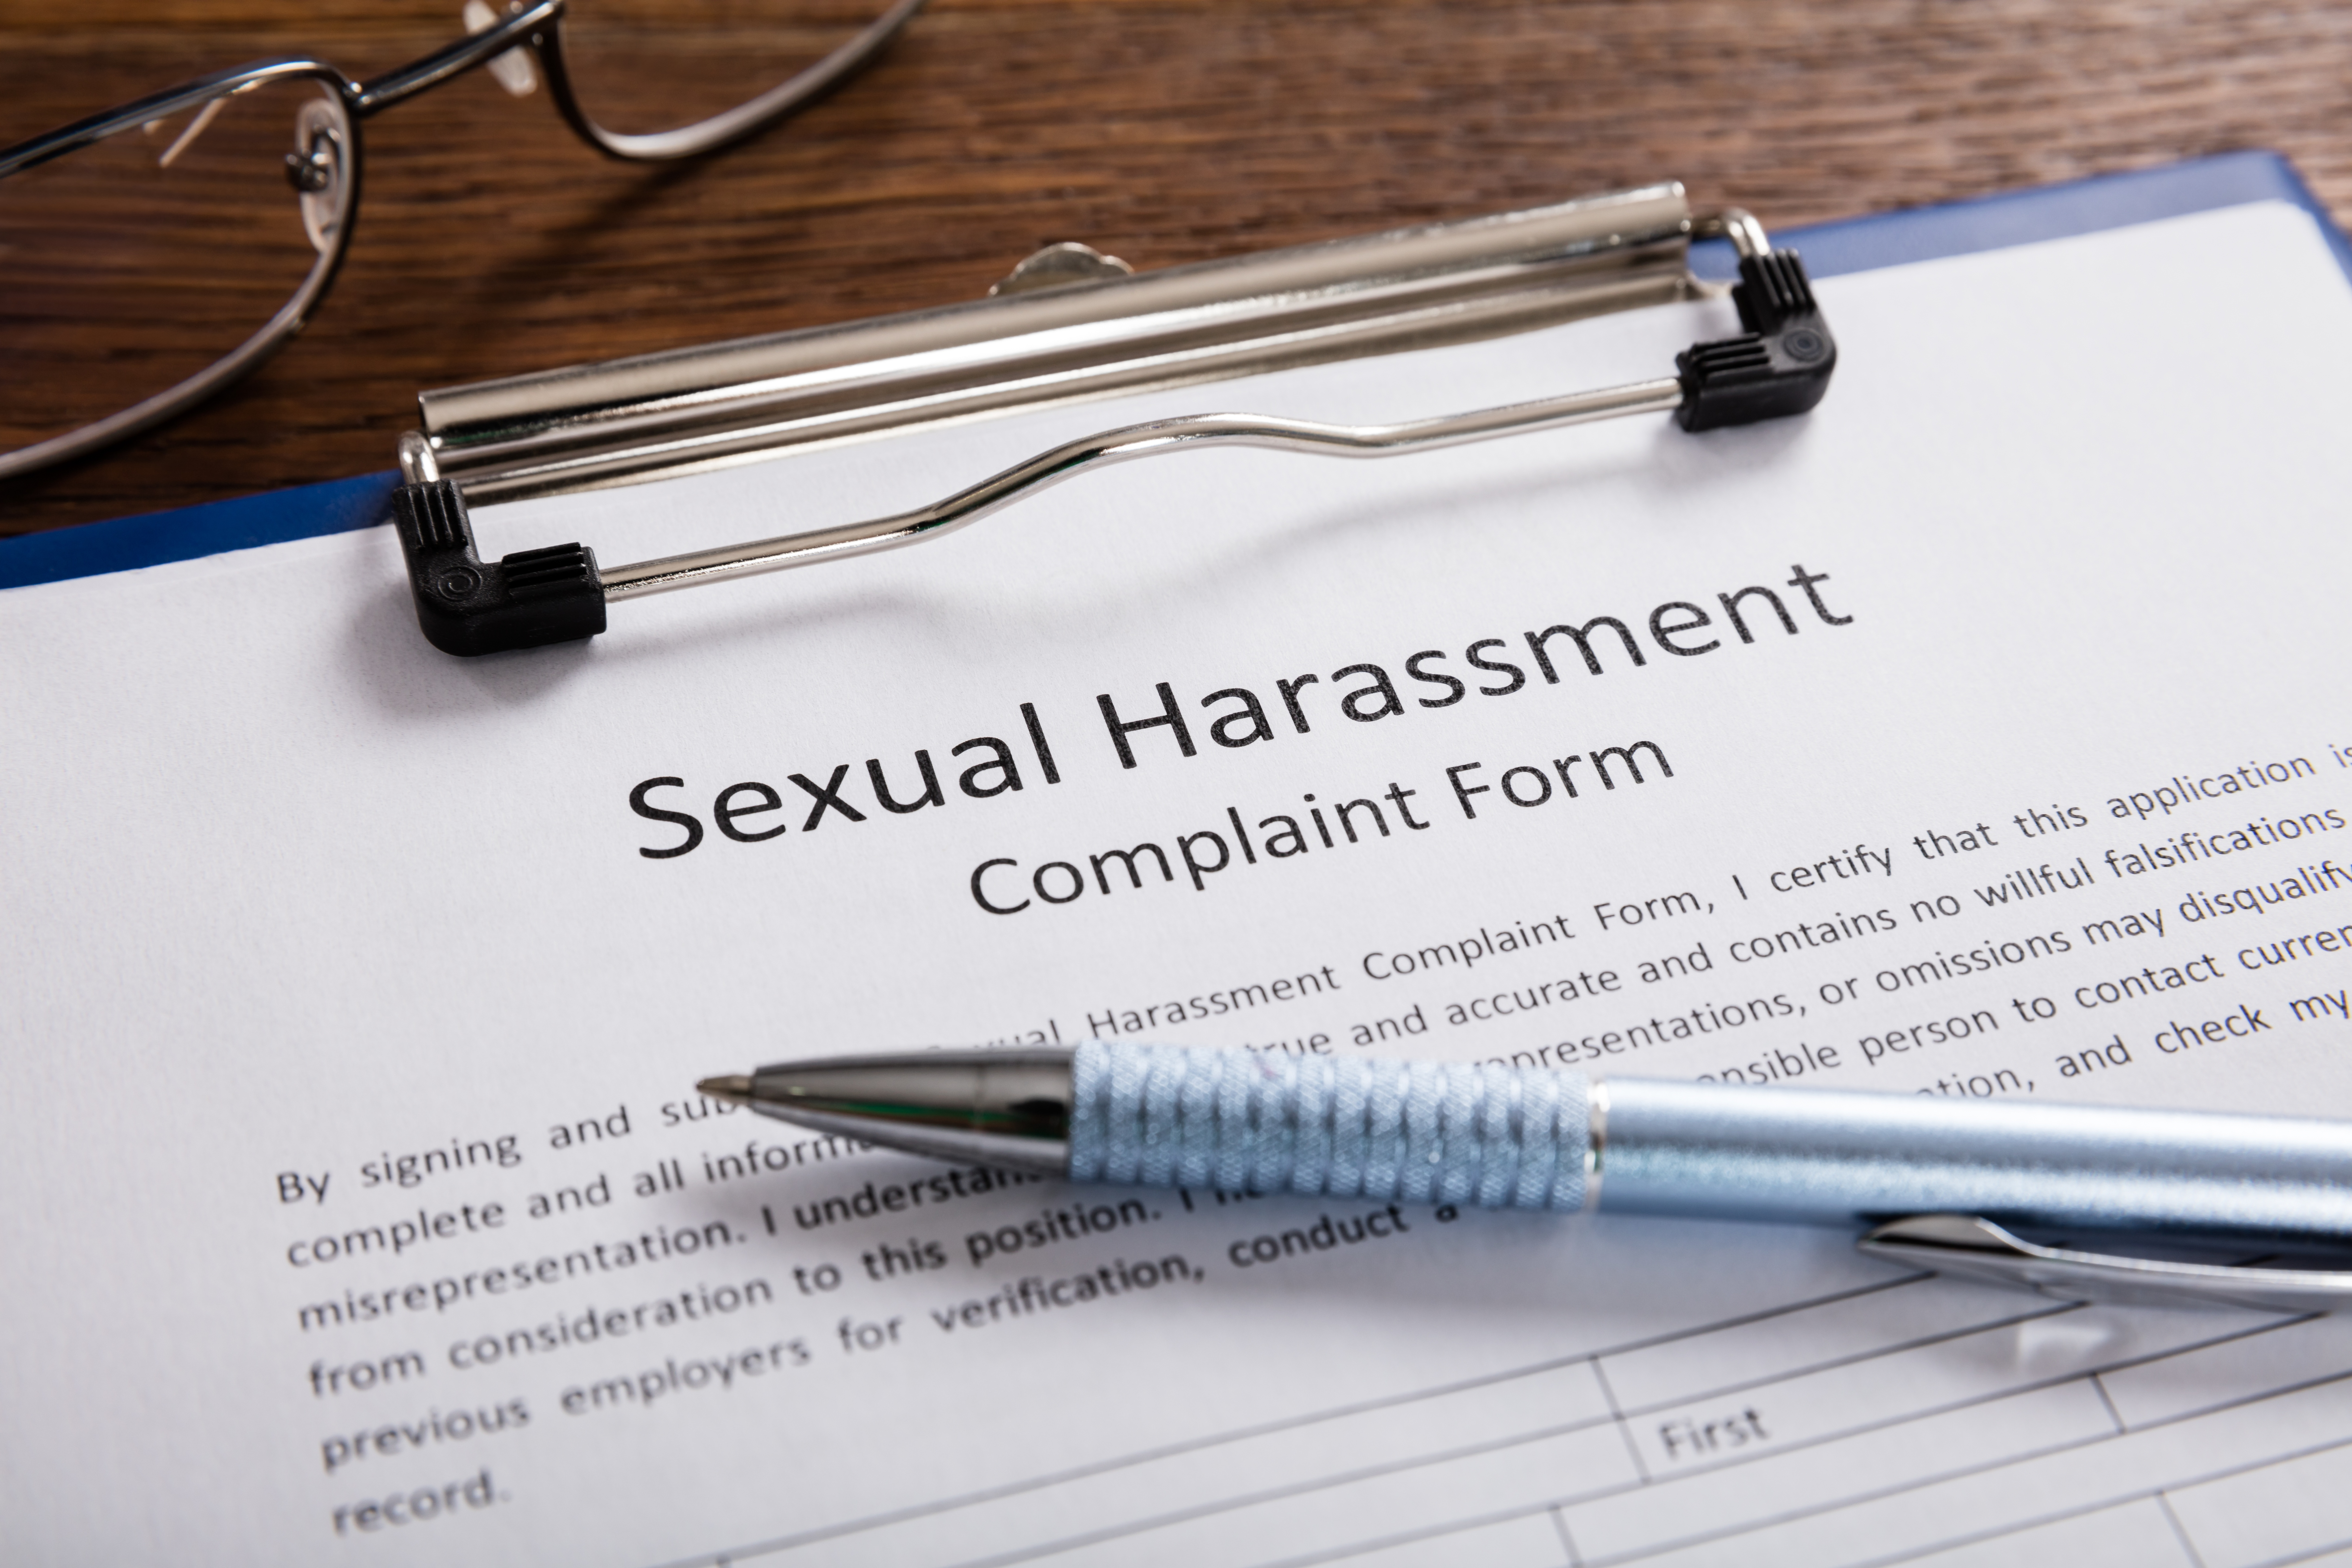 Epli coverage issues in sexual misconduct